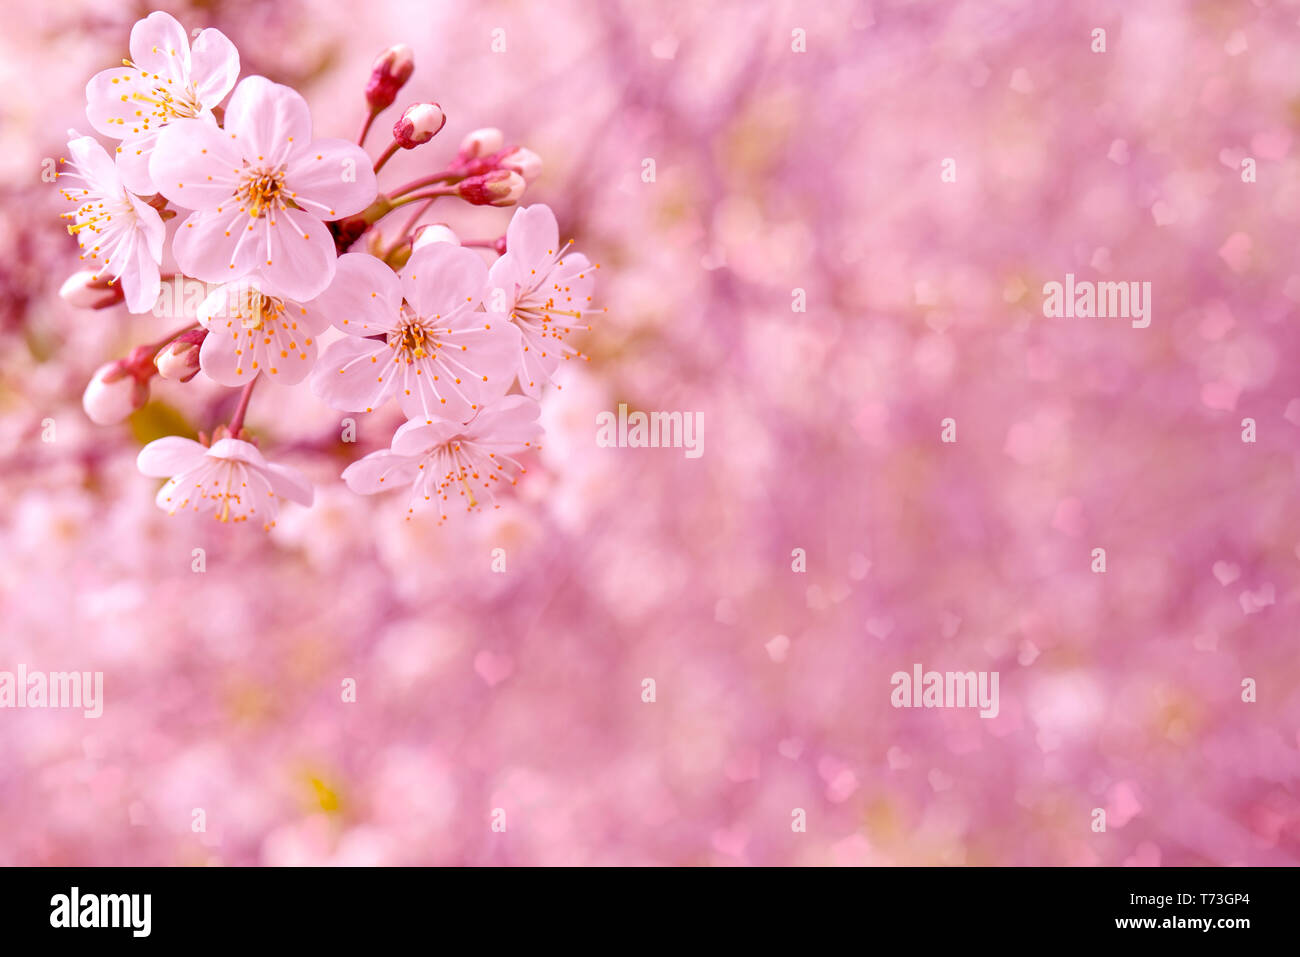 Engagement Invitation Card High Resolution Stock Photography and Images -  Alamy